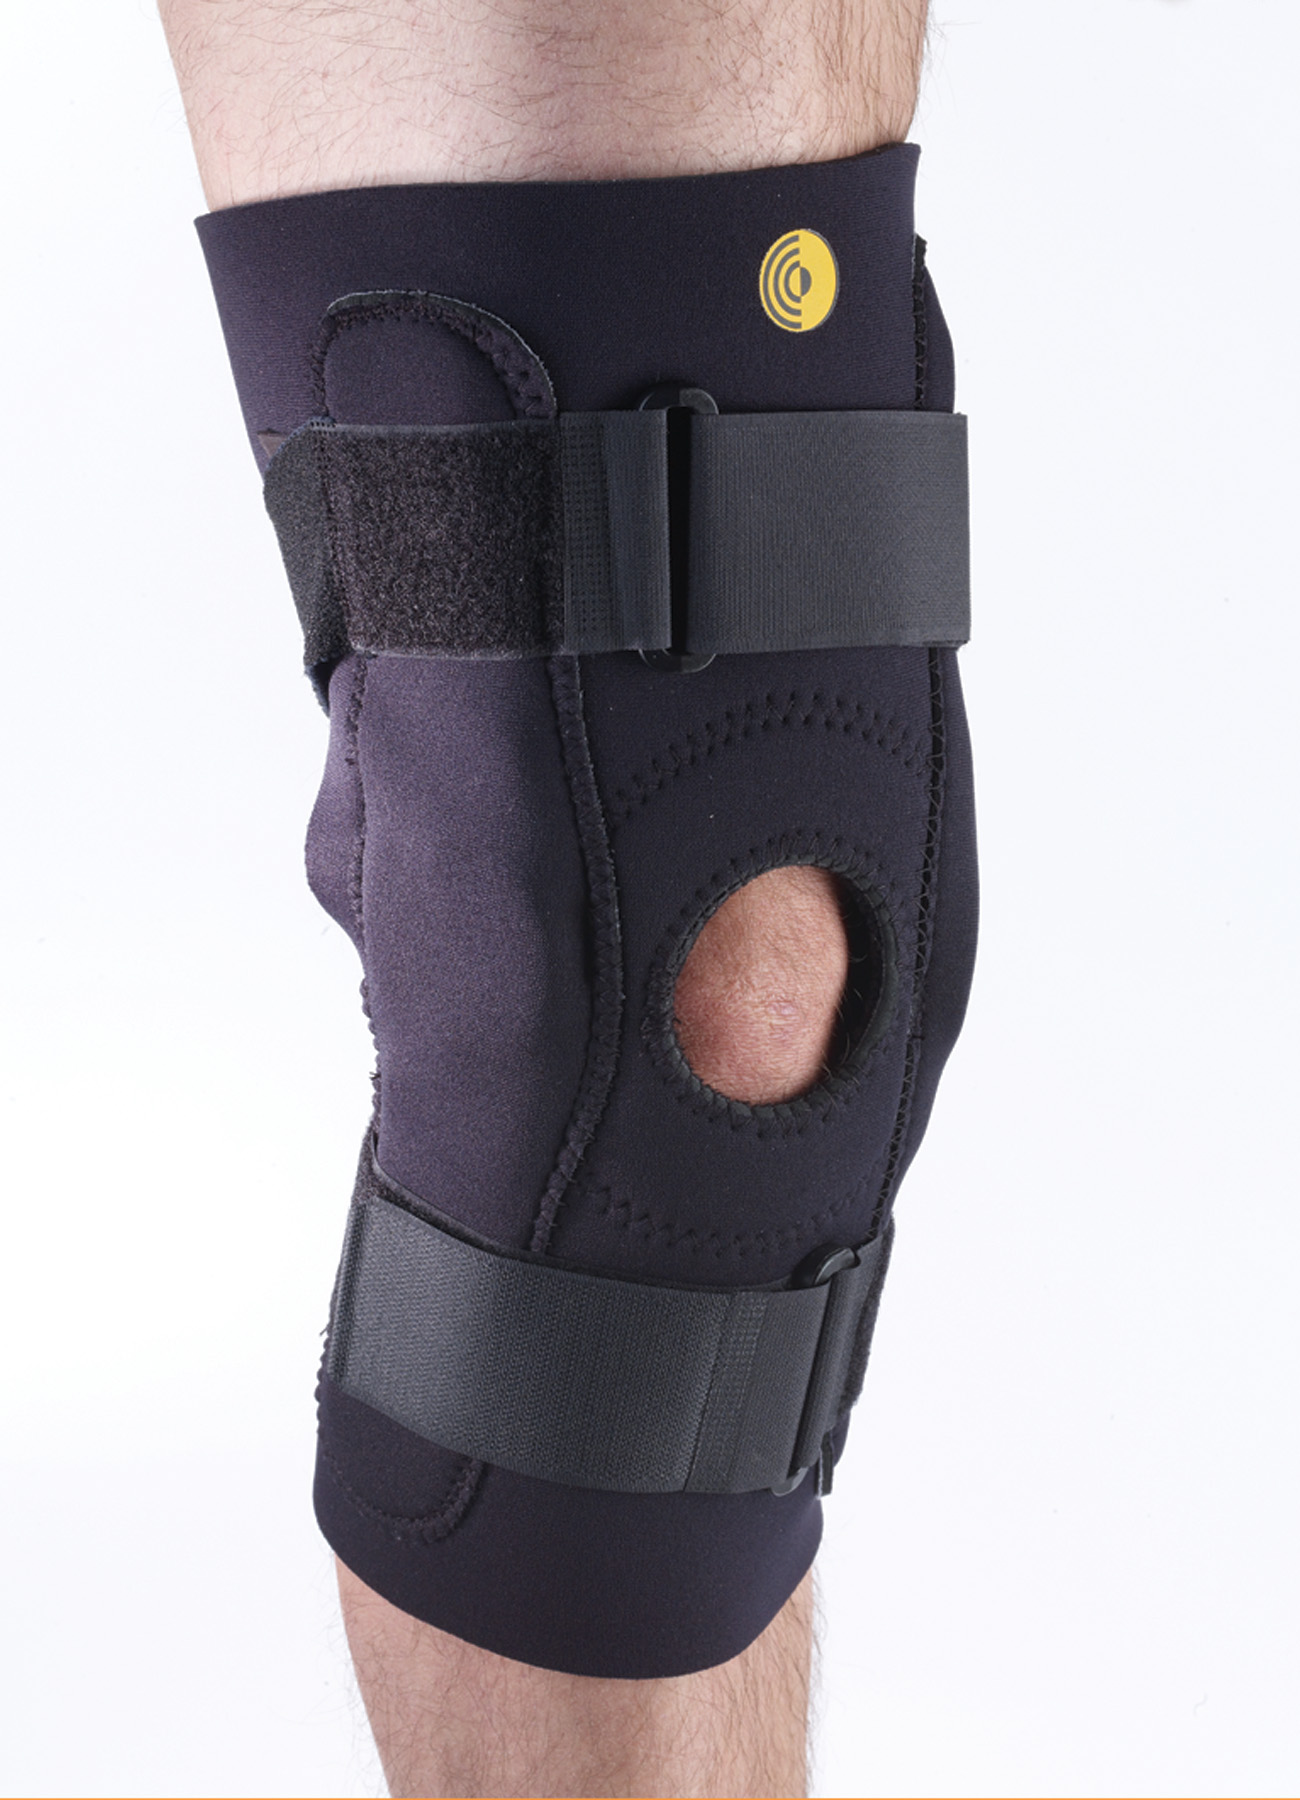 Posterior Adjustable Knee Sleeve w/Hinge